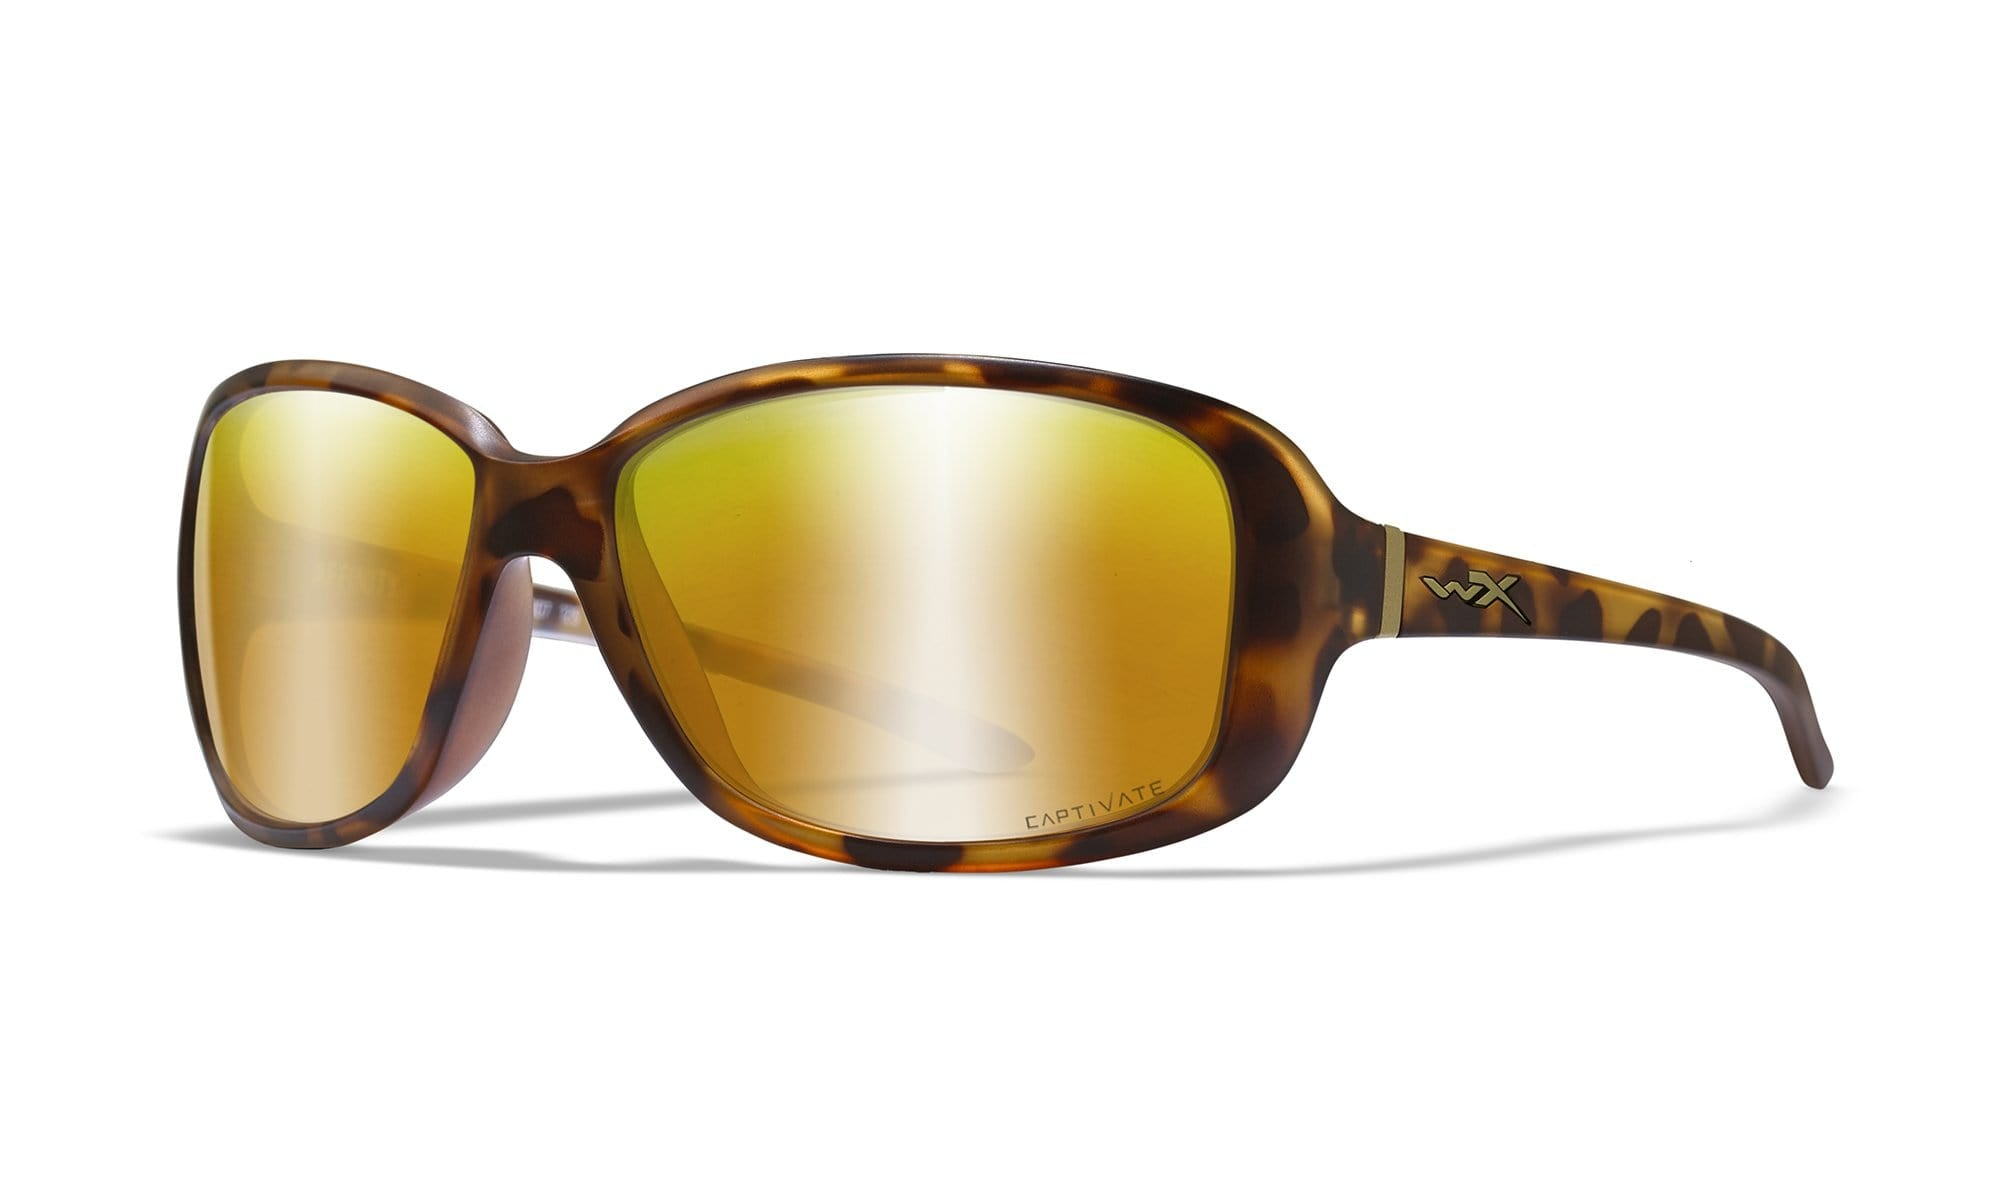 WILEY X WX Affinity Sunglasses